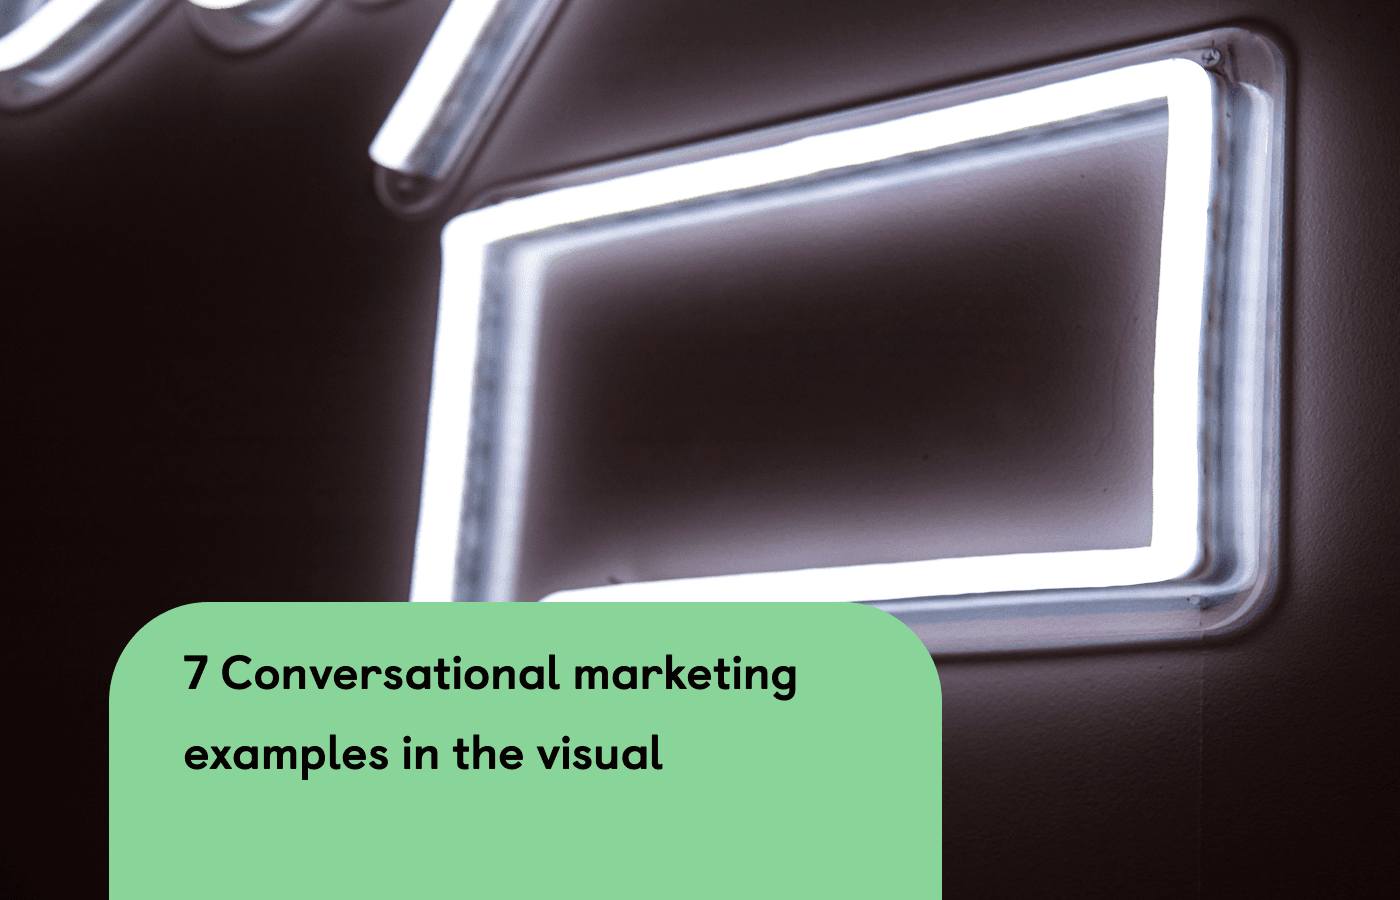 7 Conversational marketing examples you can implement in your business today